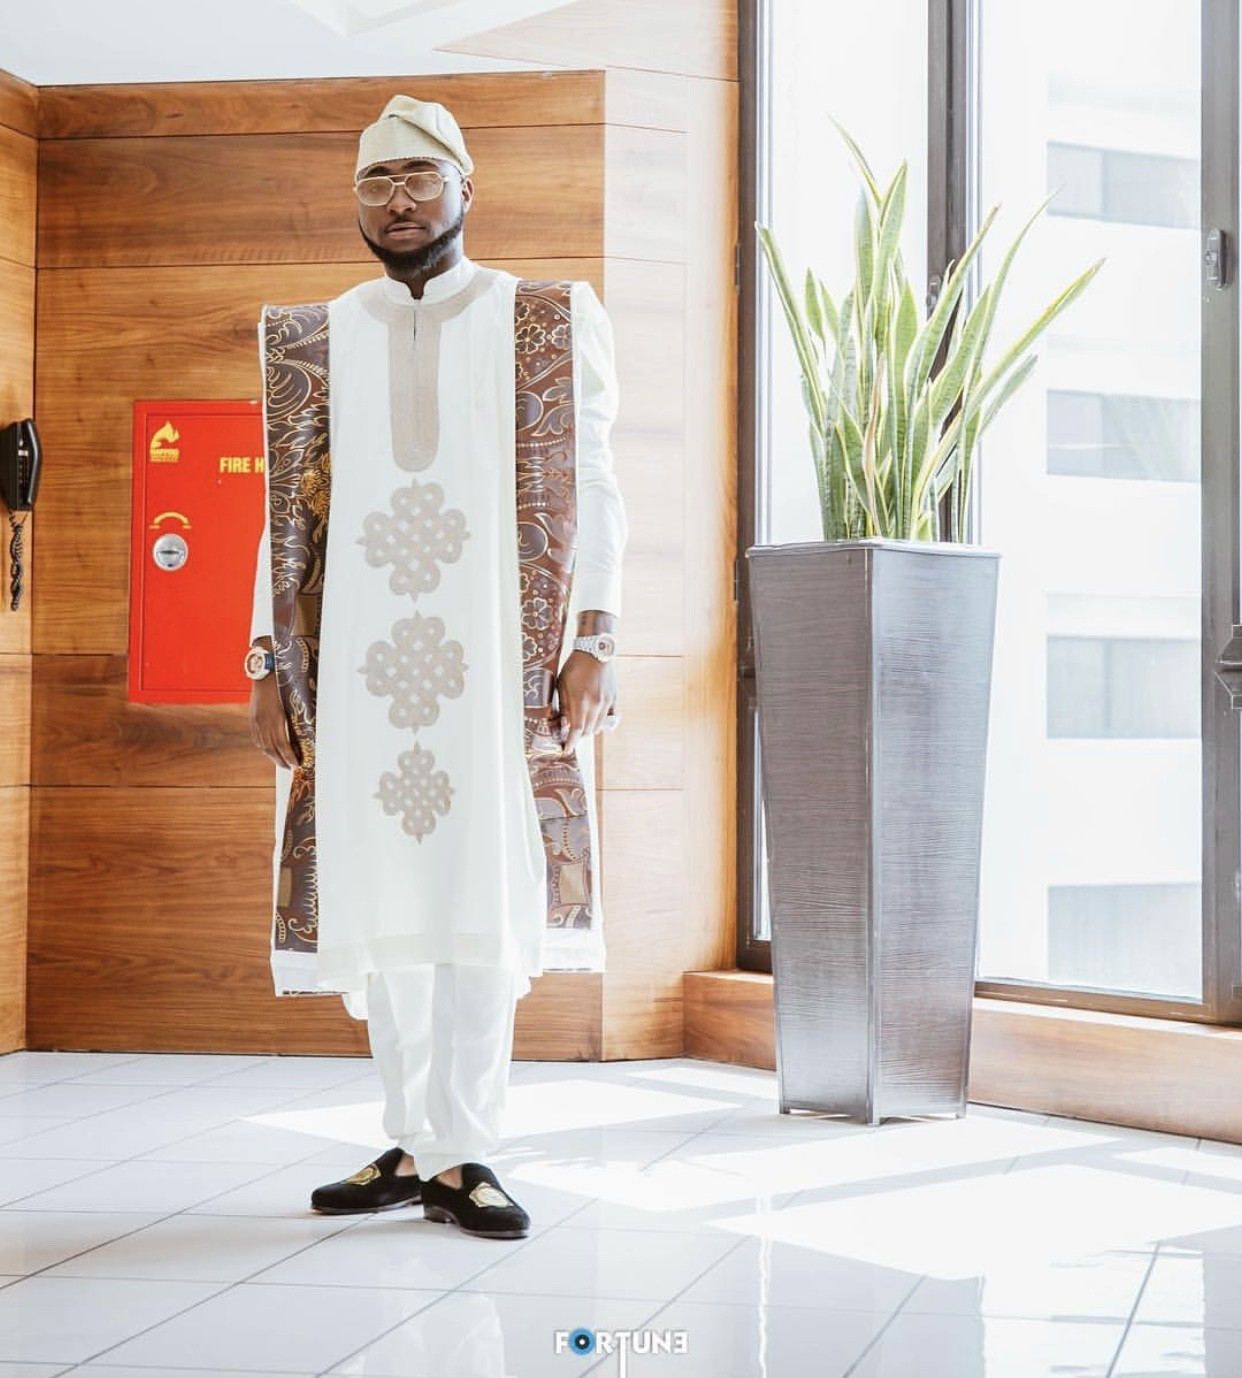 Davido steps out looking handsome in Agbada for his lawyer